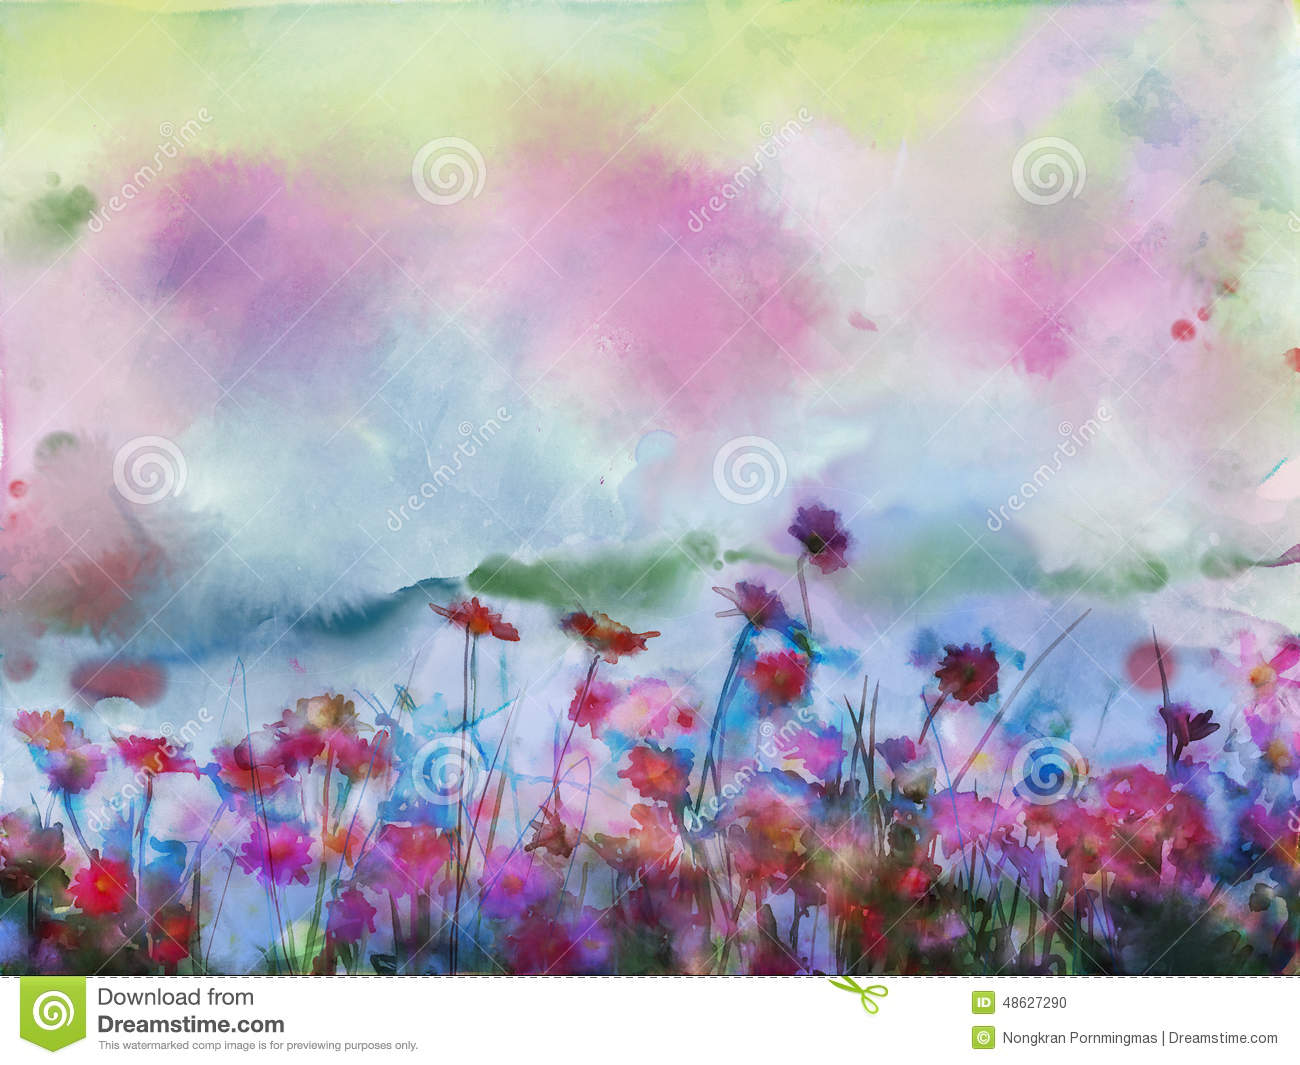 Watercolour flowers painting.Flowers in soft color and blur style